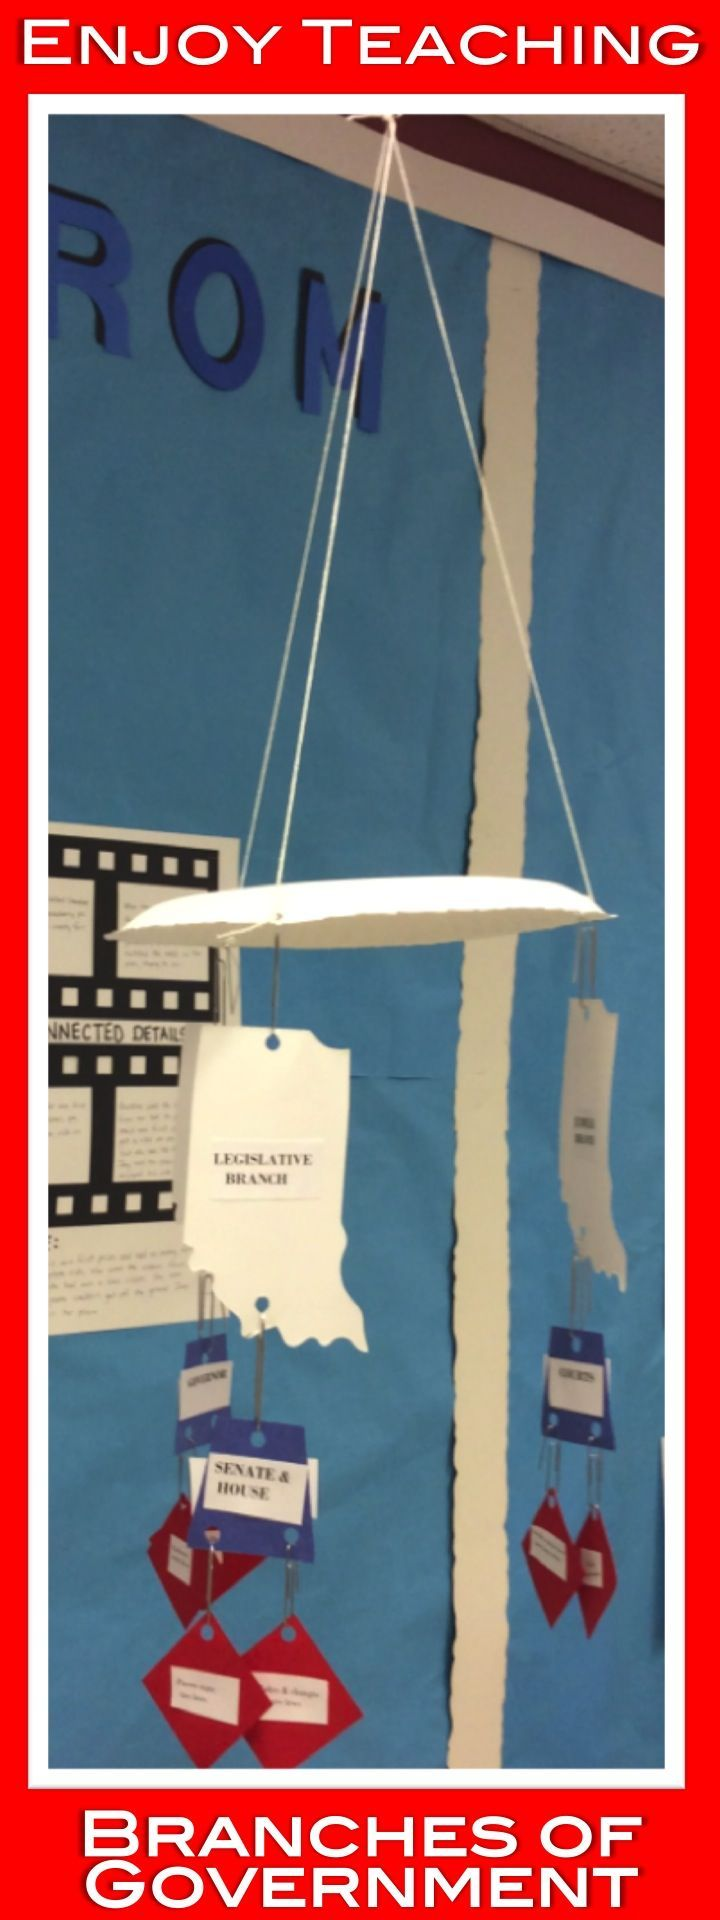 Your  fourth or fifth grade students will love creating mobiles to show what they know about the branches of government. Visit http://Enjoy-Teaching.com for directions, pictures, and a free template for the United States government.